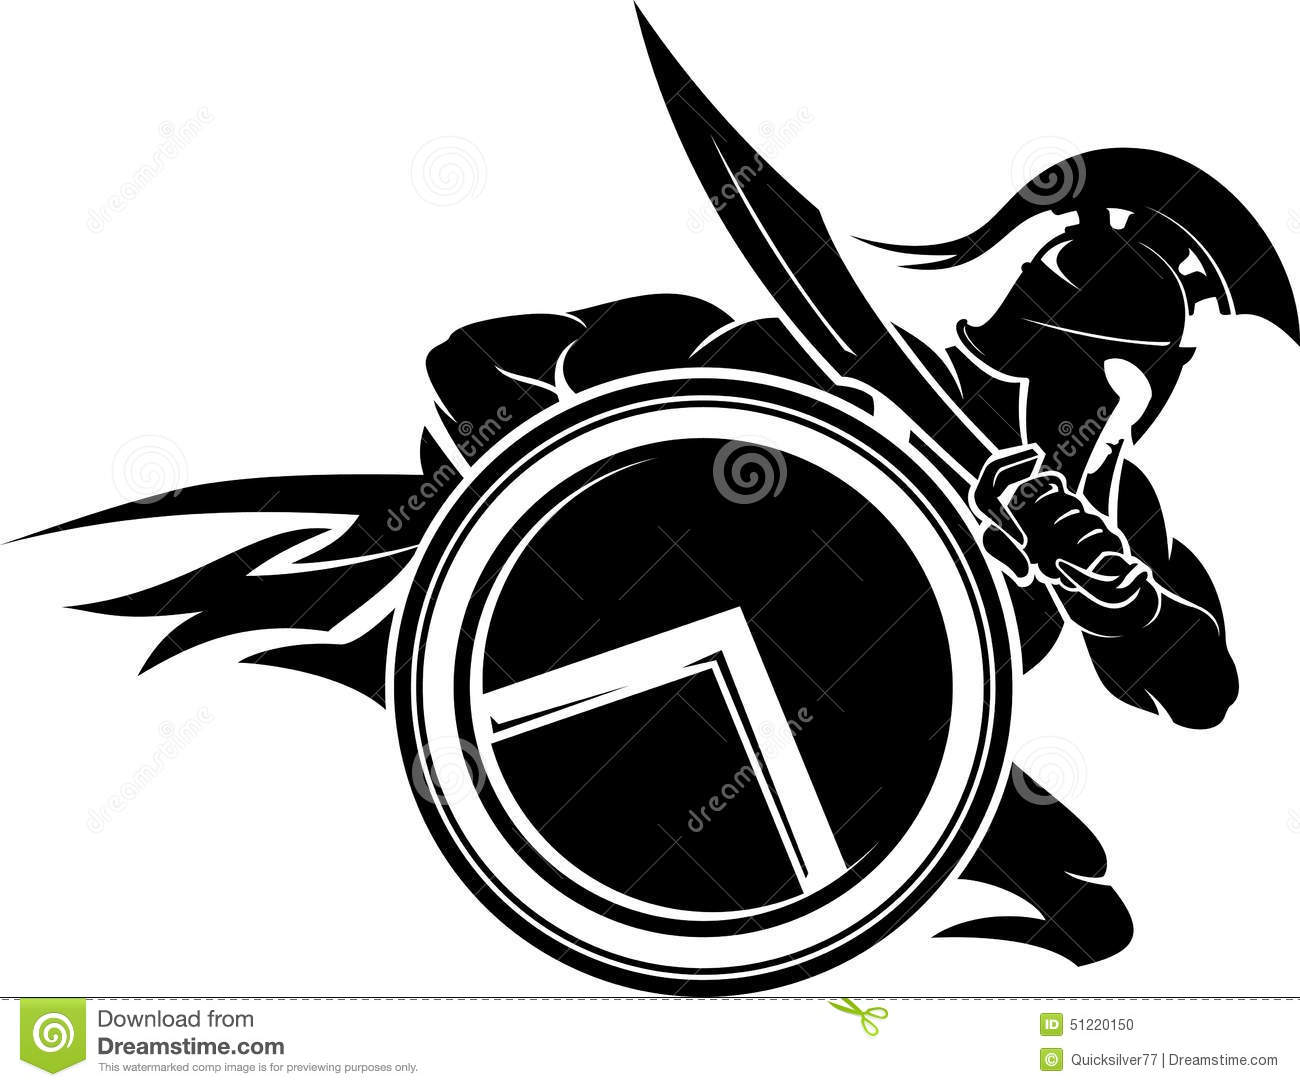 Megaman furthermore Notre Top10 Des Meilleurs Avions De Chasse furthermore Stimpak  Fallout 4 likewise Stock Illustration Medieval Spartan Warrior Attack Stance Side View Silhouette Isolated Object Illustration Image51220150 in addition Flash Die Cut Vinyl Decal Pv1374. on military robots